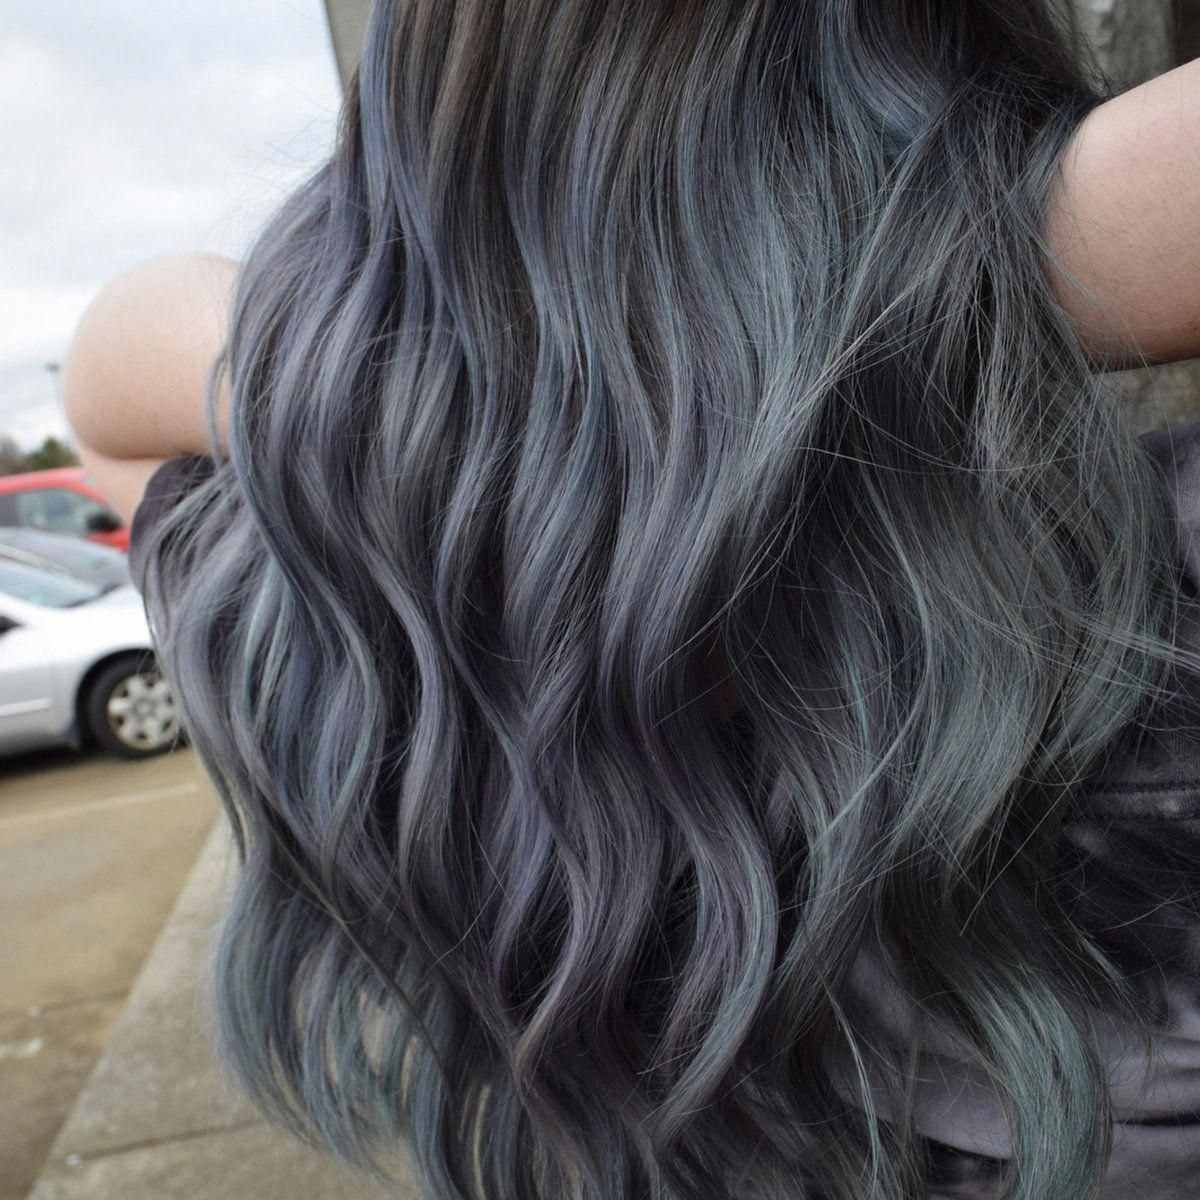 Charcoal Hair Color Unicorn Grey Hair Dye In 2020 Permanent Hair Dye Charcoal Hair Brunette Hair Color